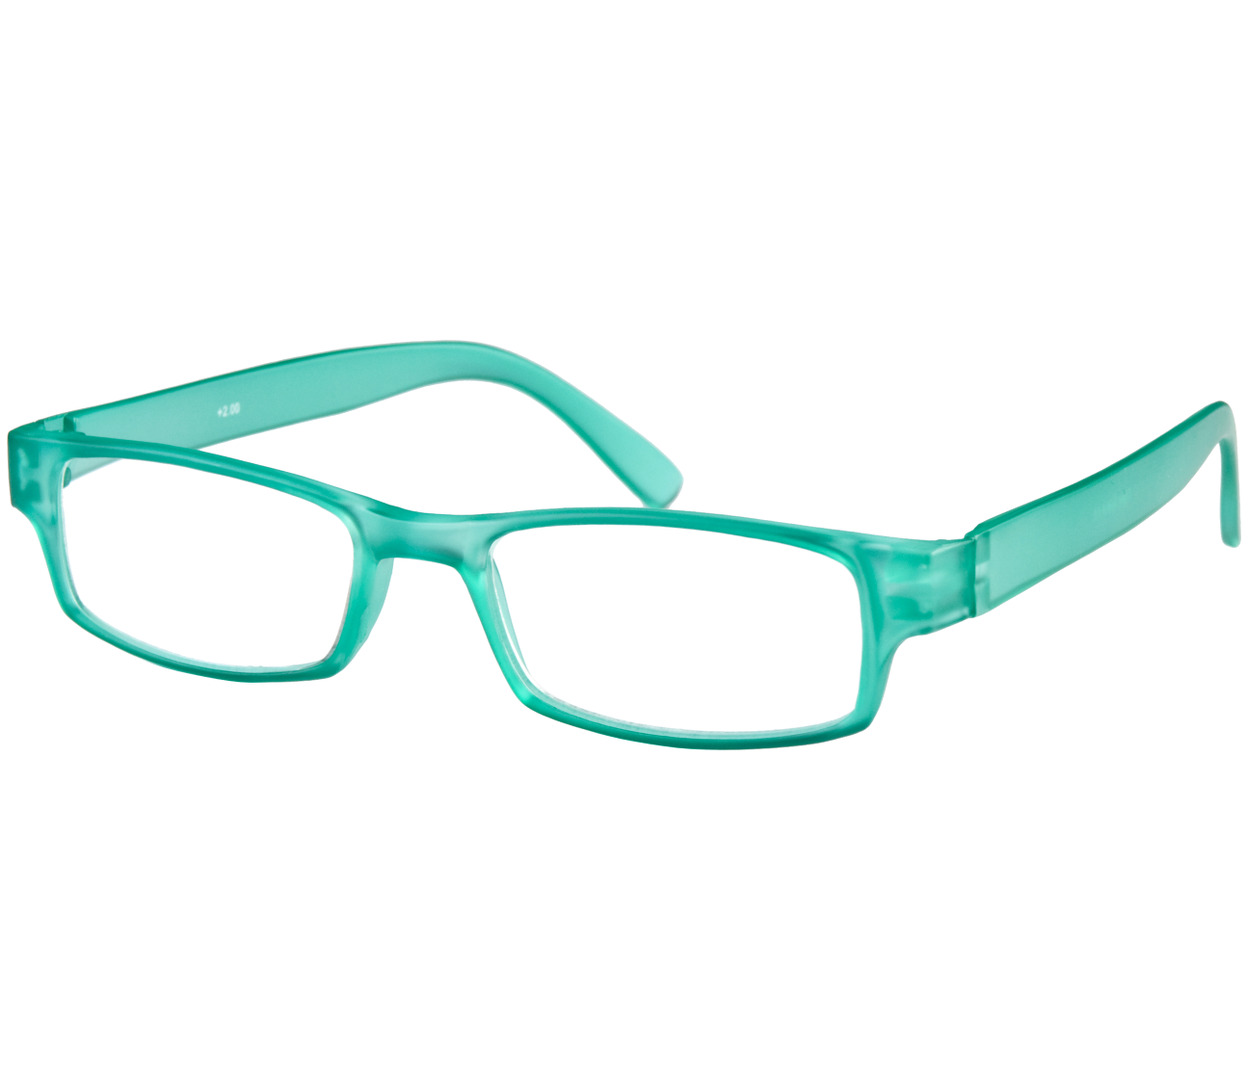 Main Image (Angle) - Friski (Turquoise) Classic Reading Glasses